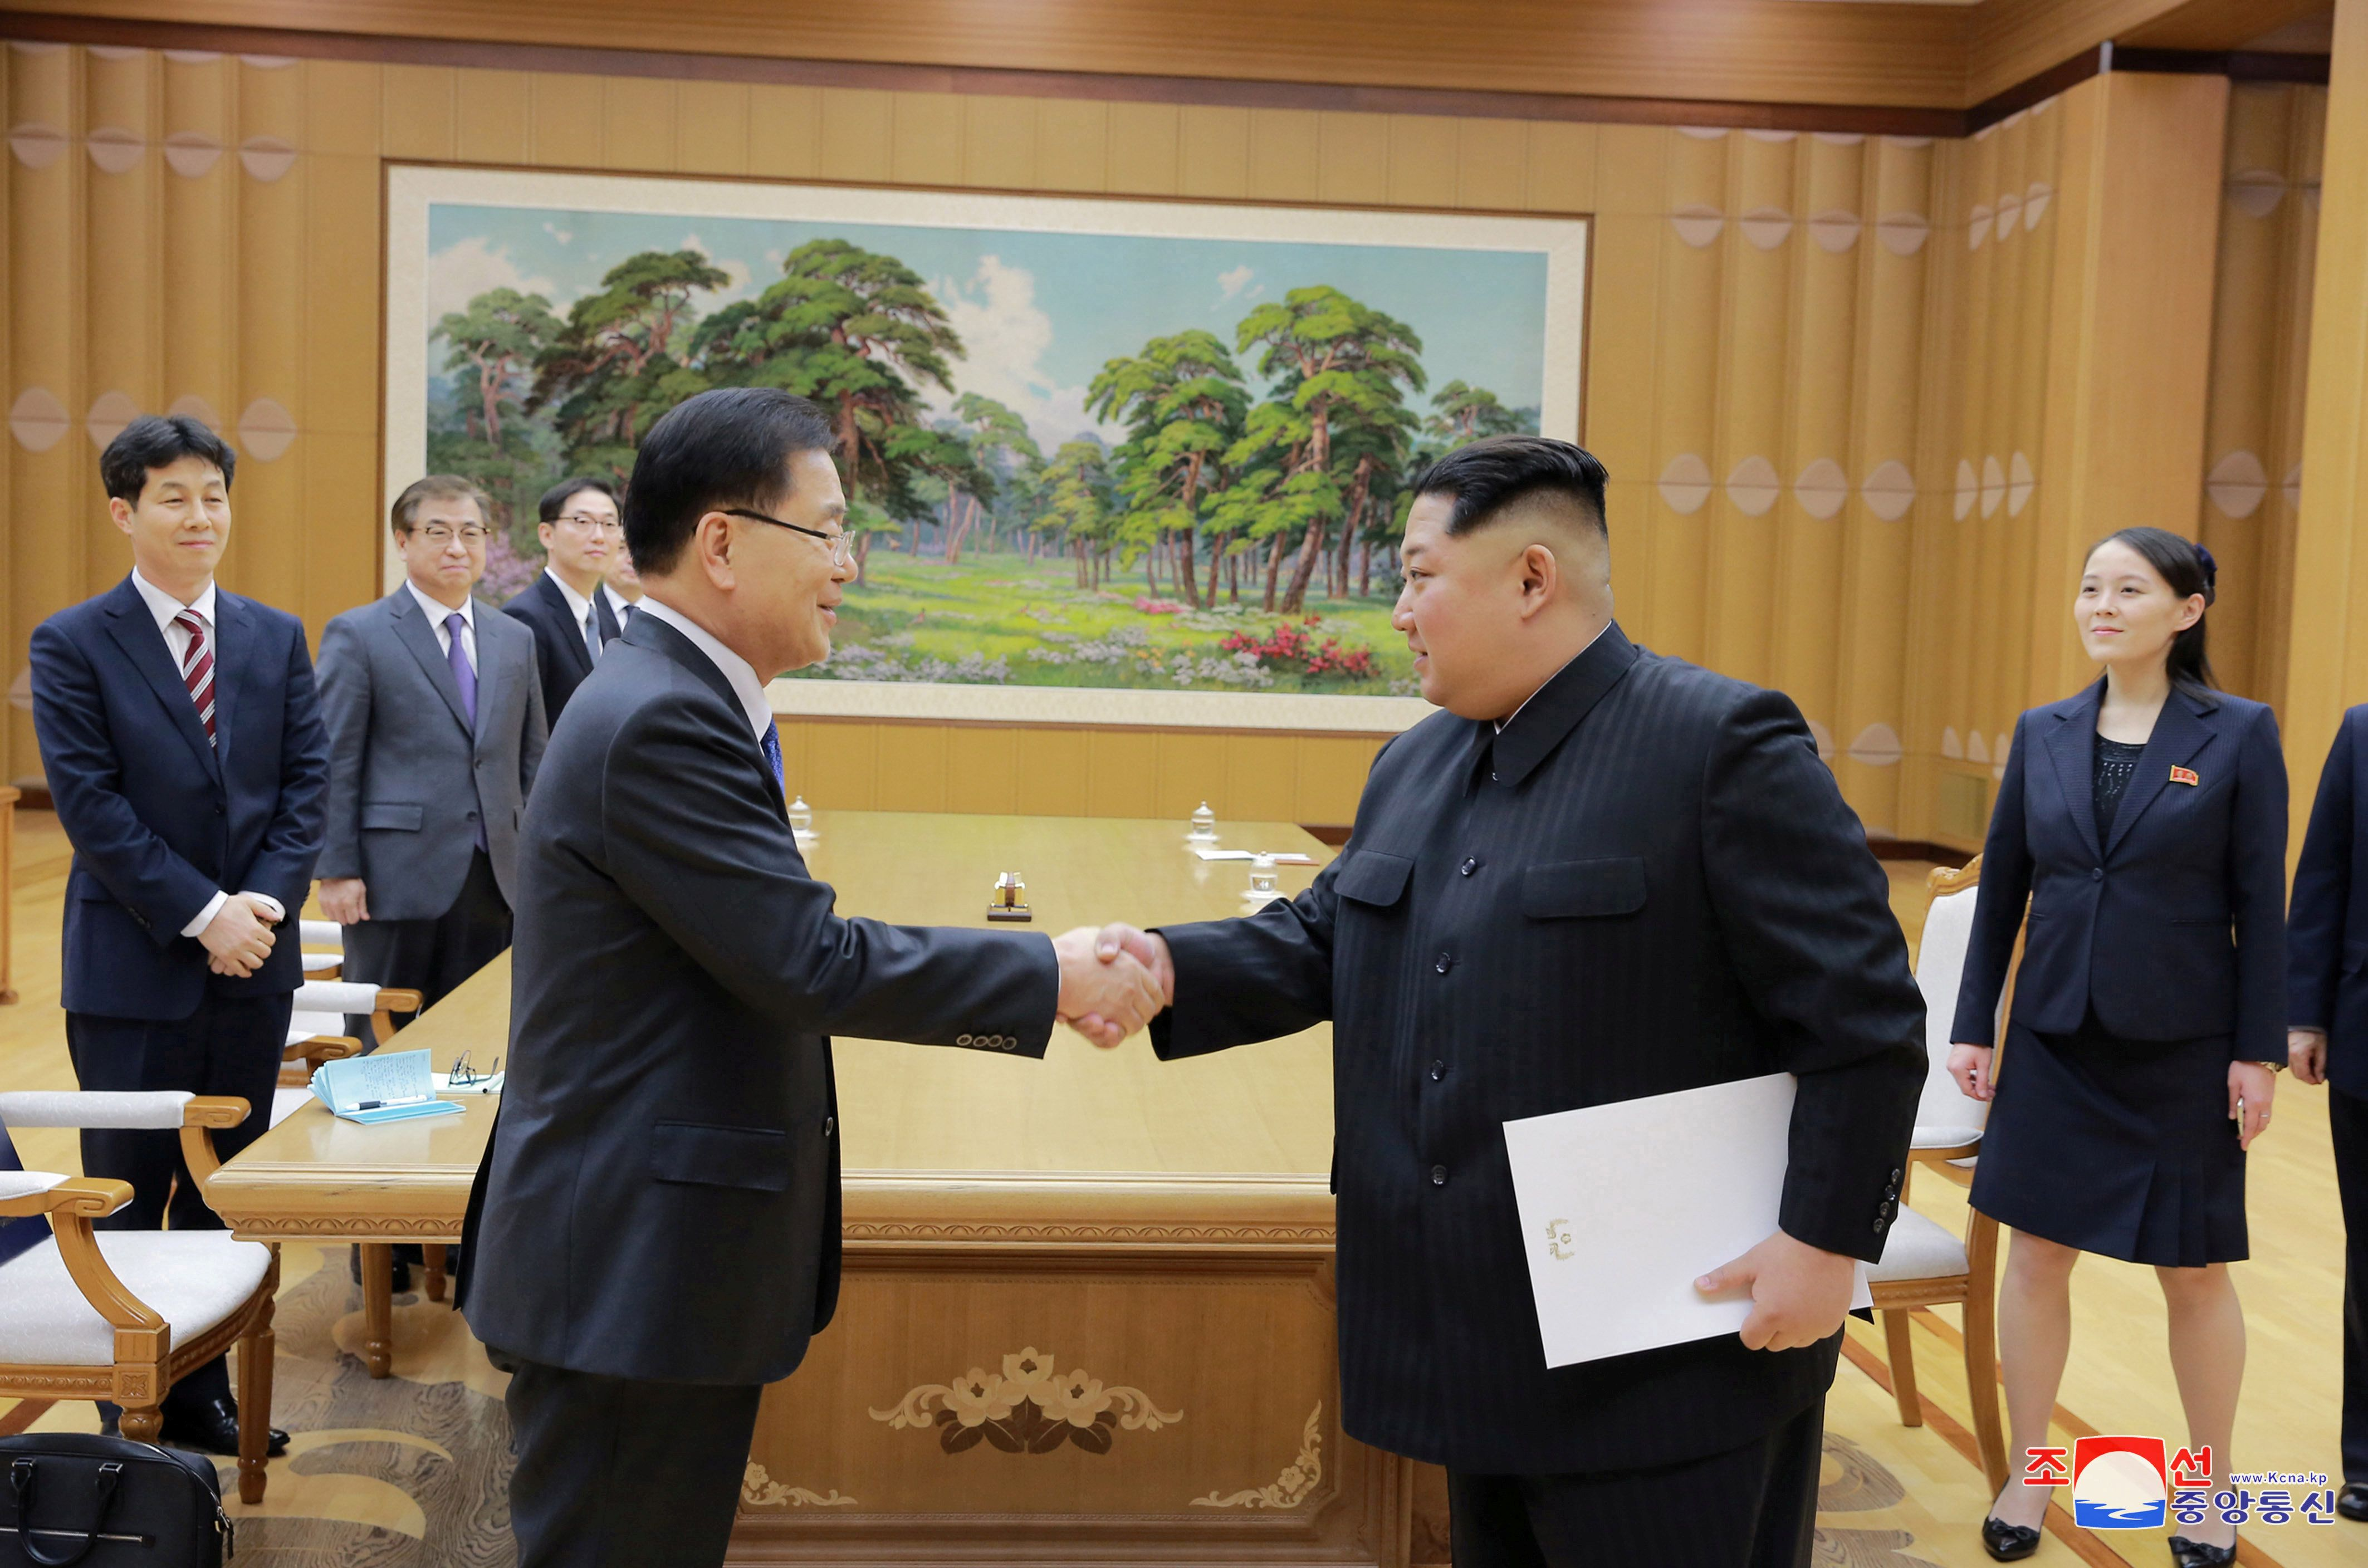 north korea says it u0026 39 s open to talking denuclearization with the u s